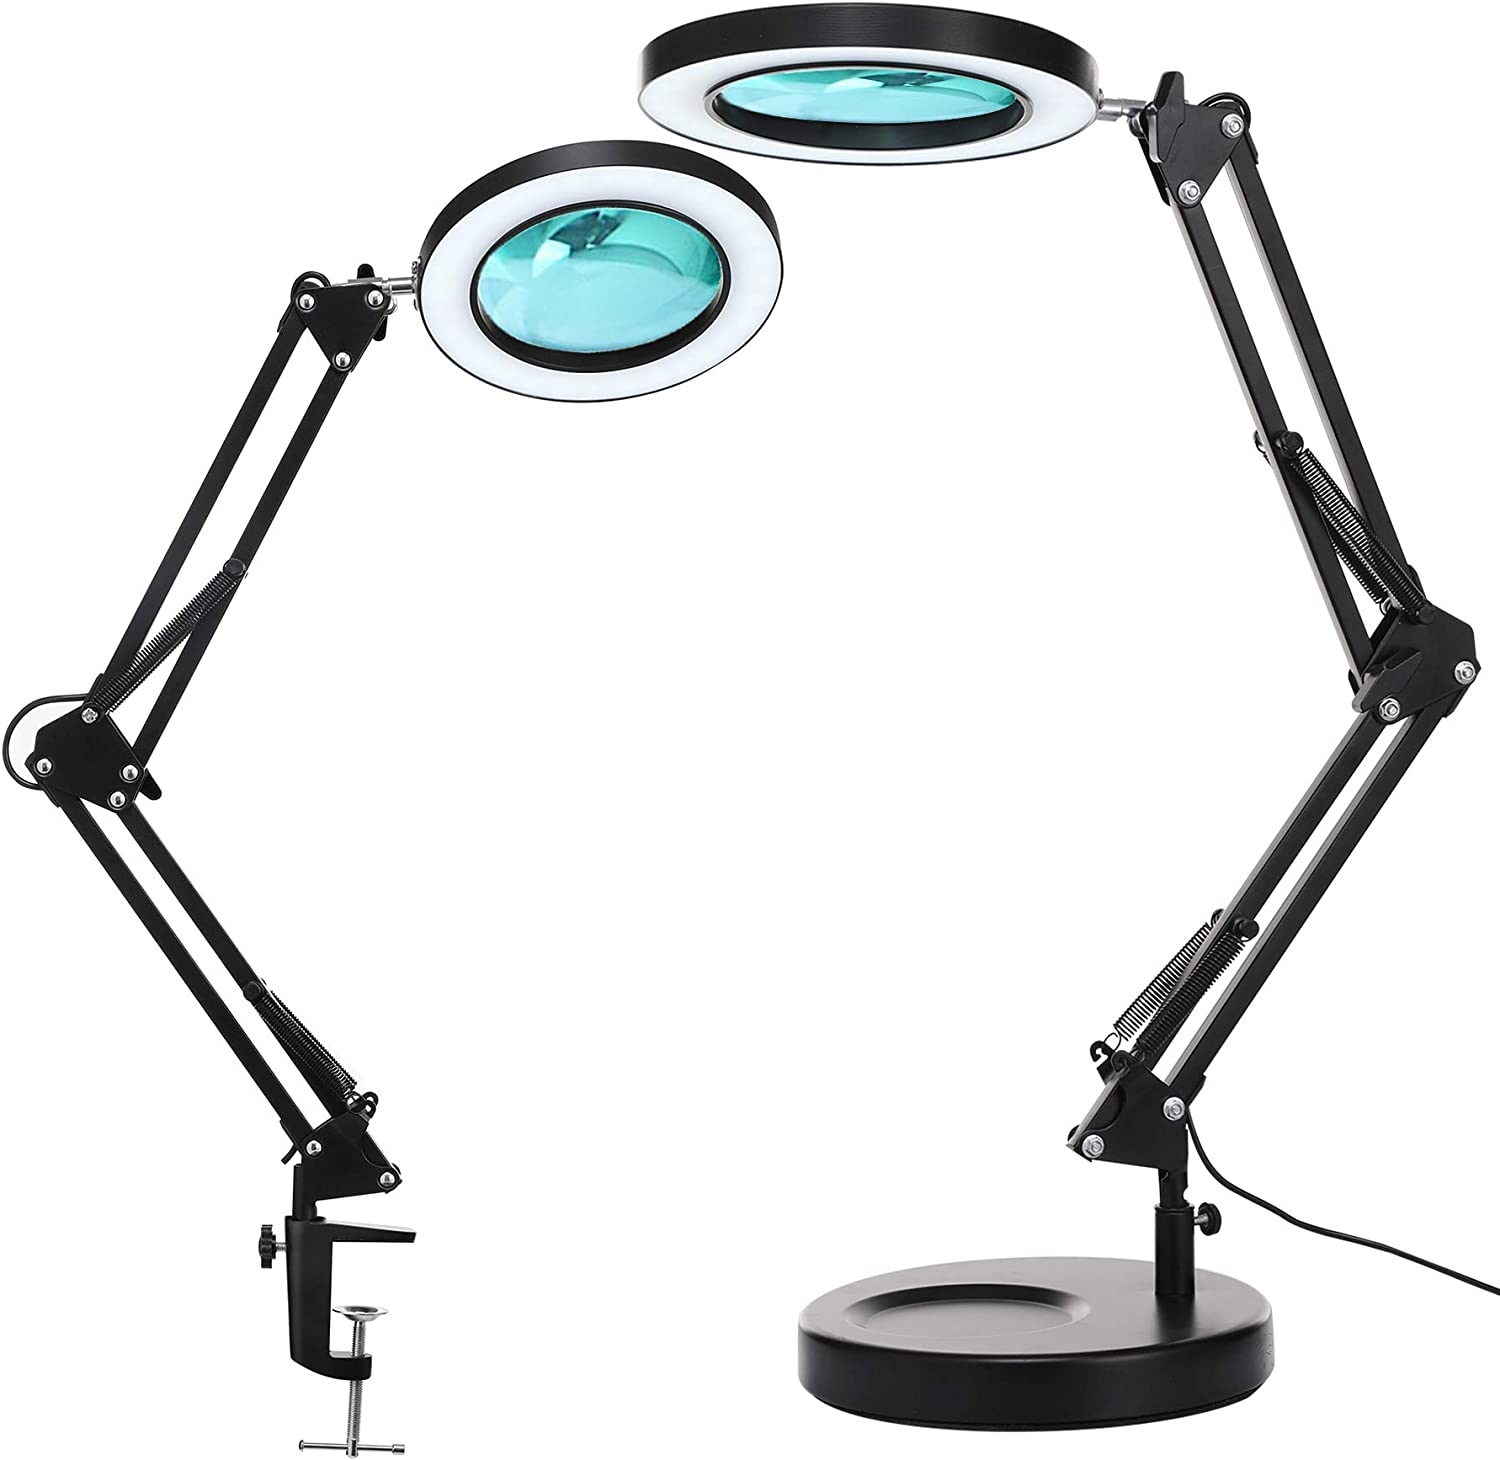 5-Diopter 4.1 Real Glass LANCOSC 2-in-1 Magnifying Desk Lamp with Clamp LED Magnifier with Light and Stand for Repair Close Works Stepless Dimmable 3 Color Modes Crafts Reading Black